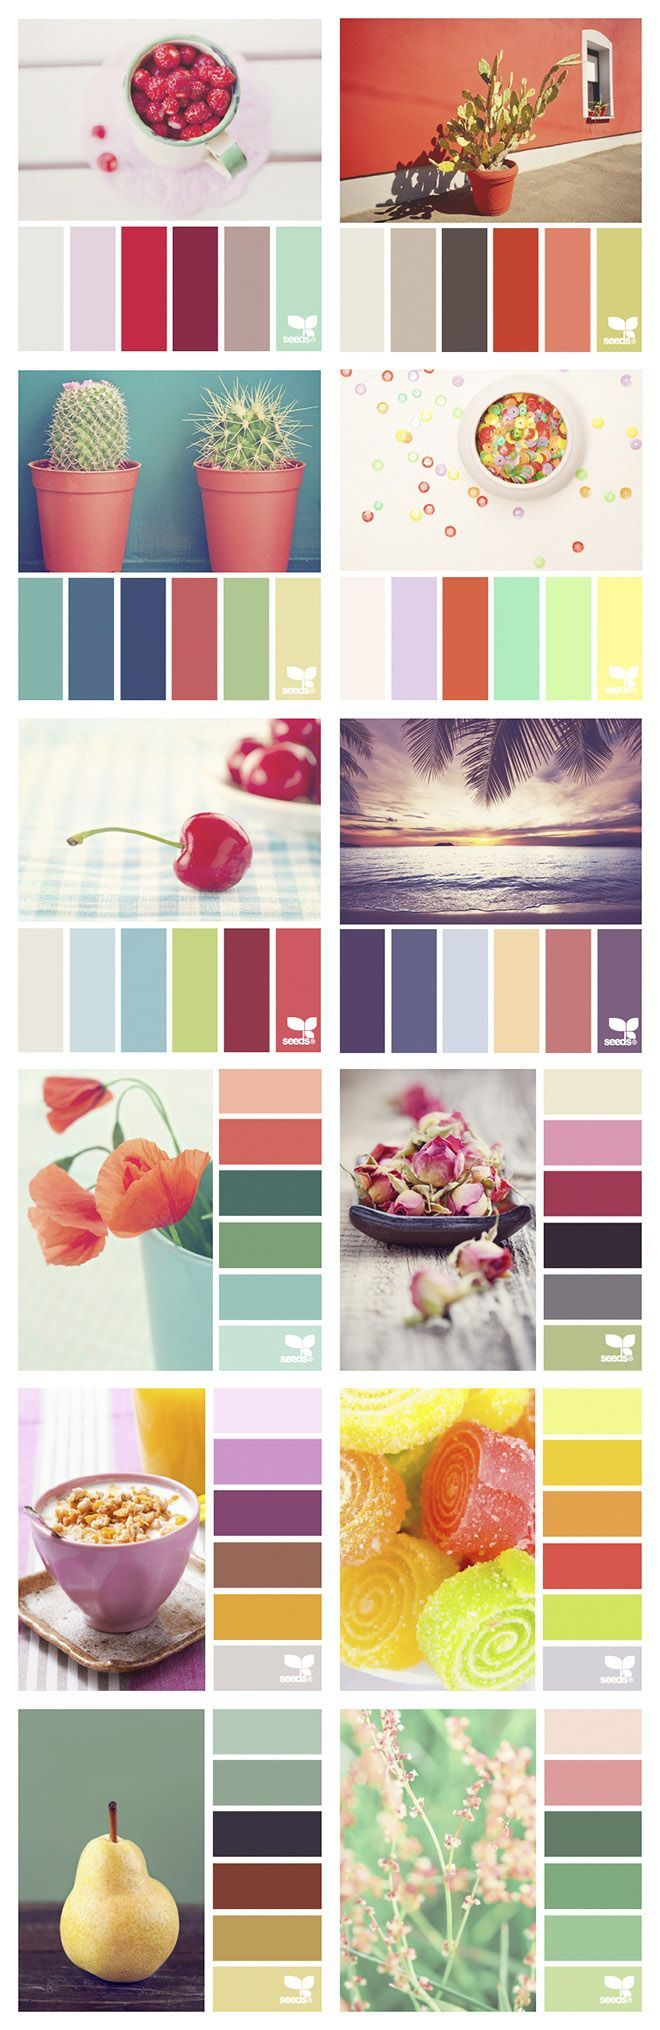 Design_Seeds_Tizas-Hechas-Trizas-color-palete | Colors | Pinterest ...